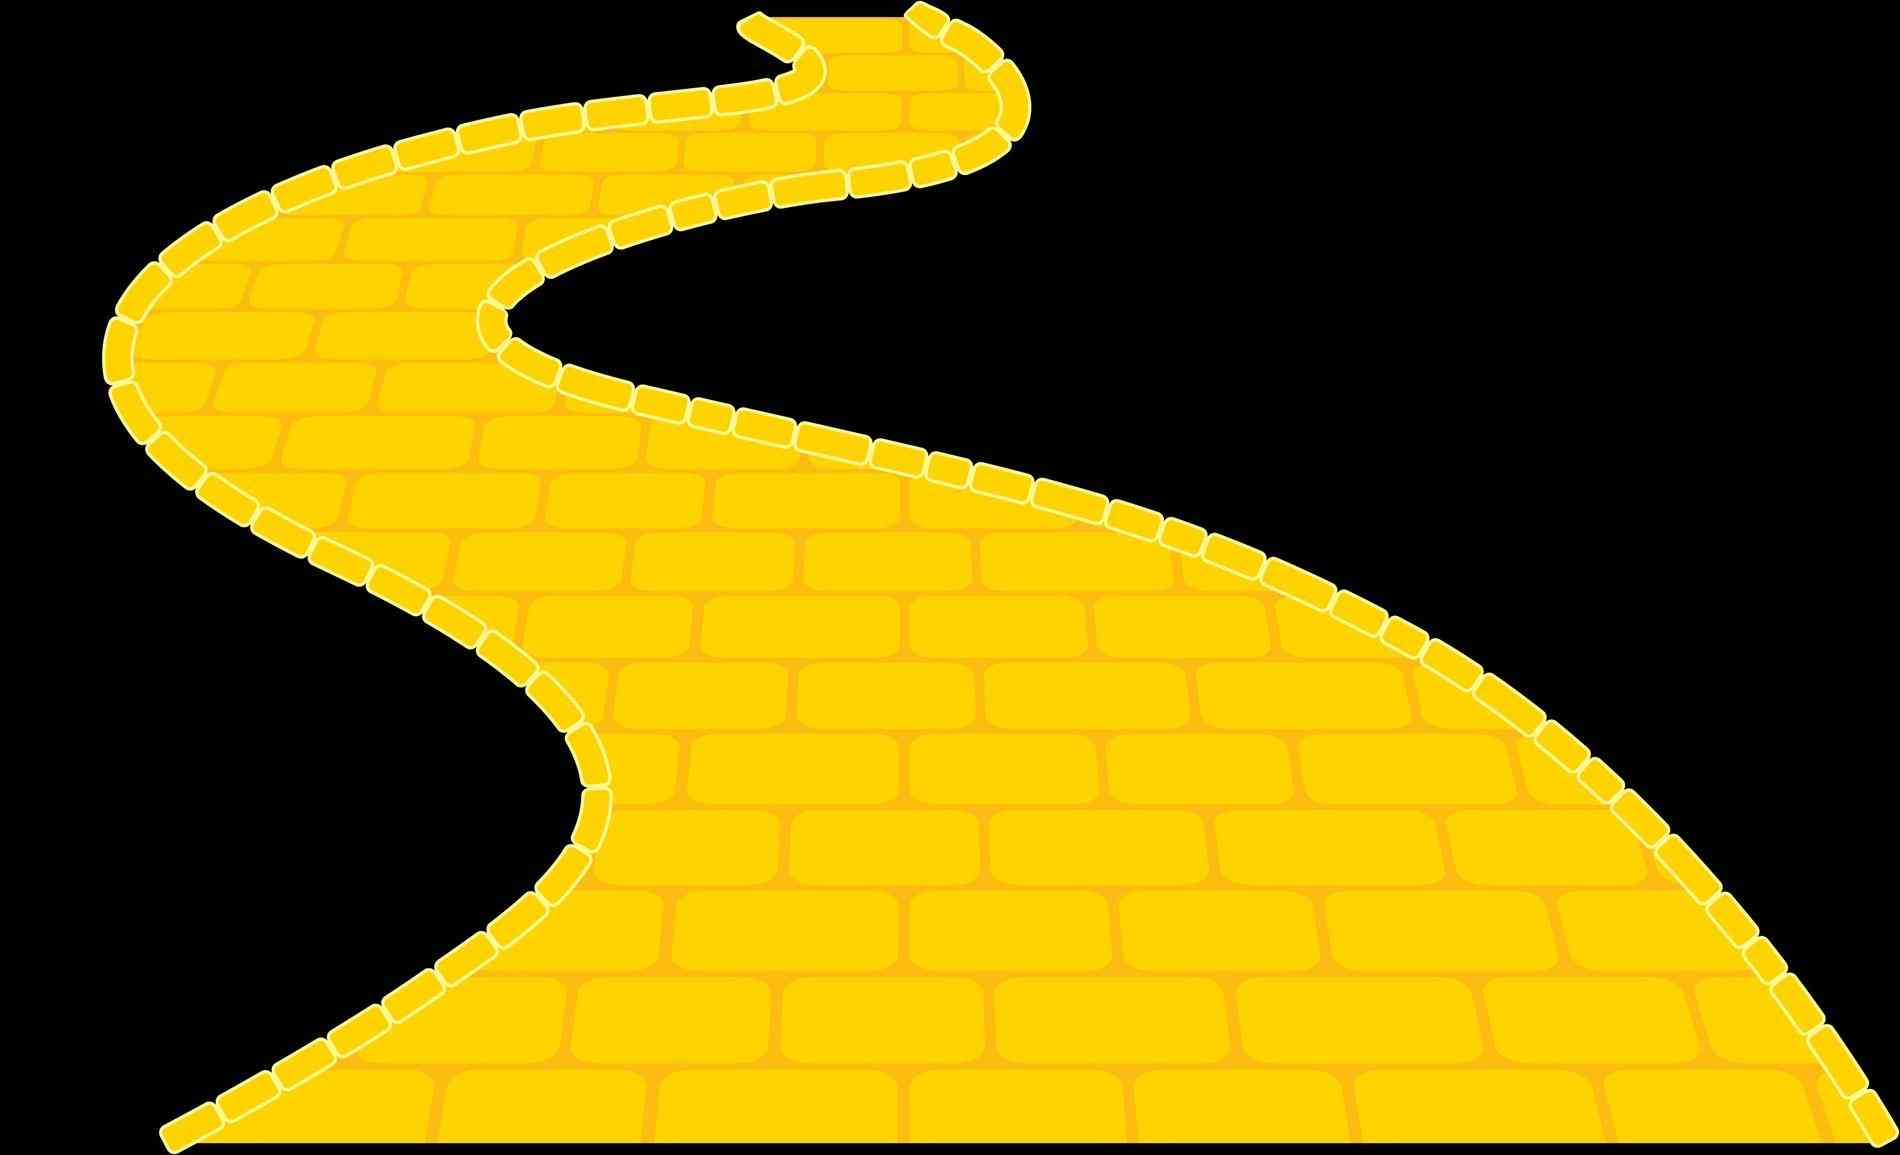 attractive brick wall clip art gallery the wall art decorations rh mypromoisrich com wizard of oz yellow brick road clipart